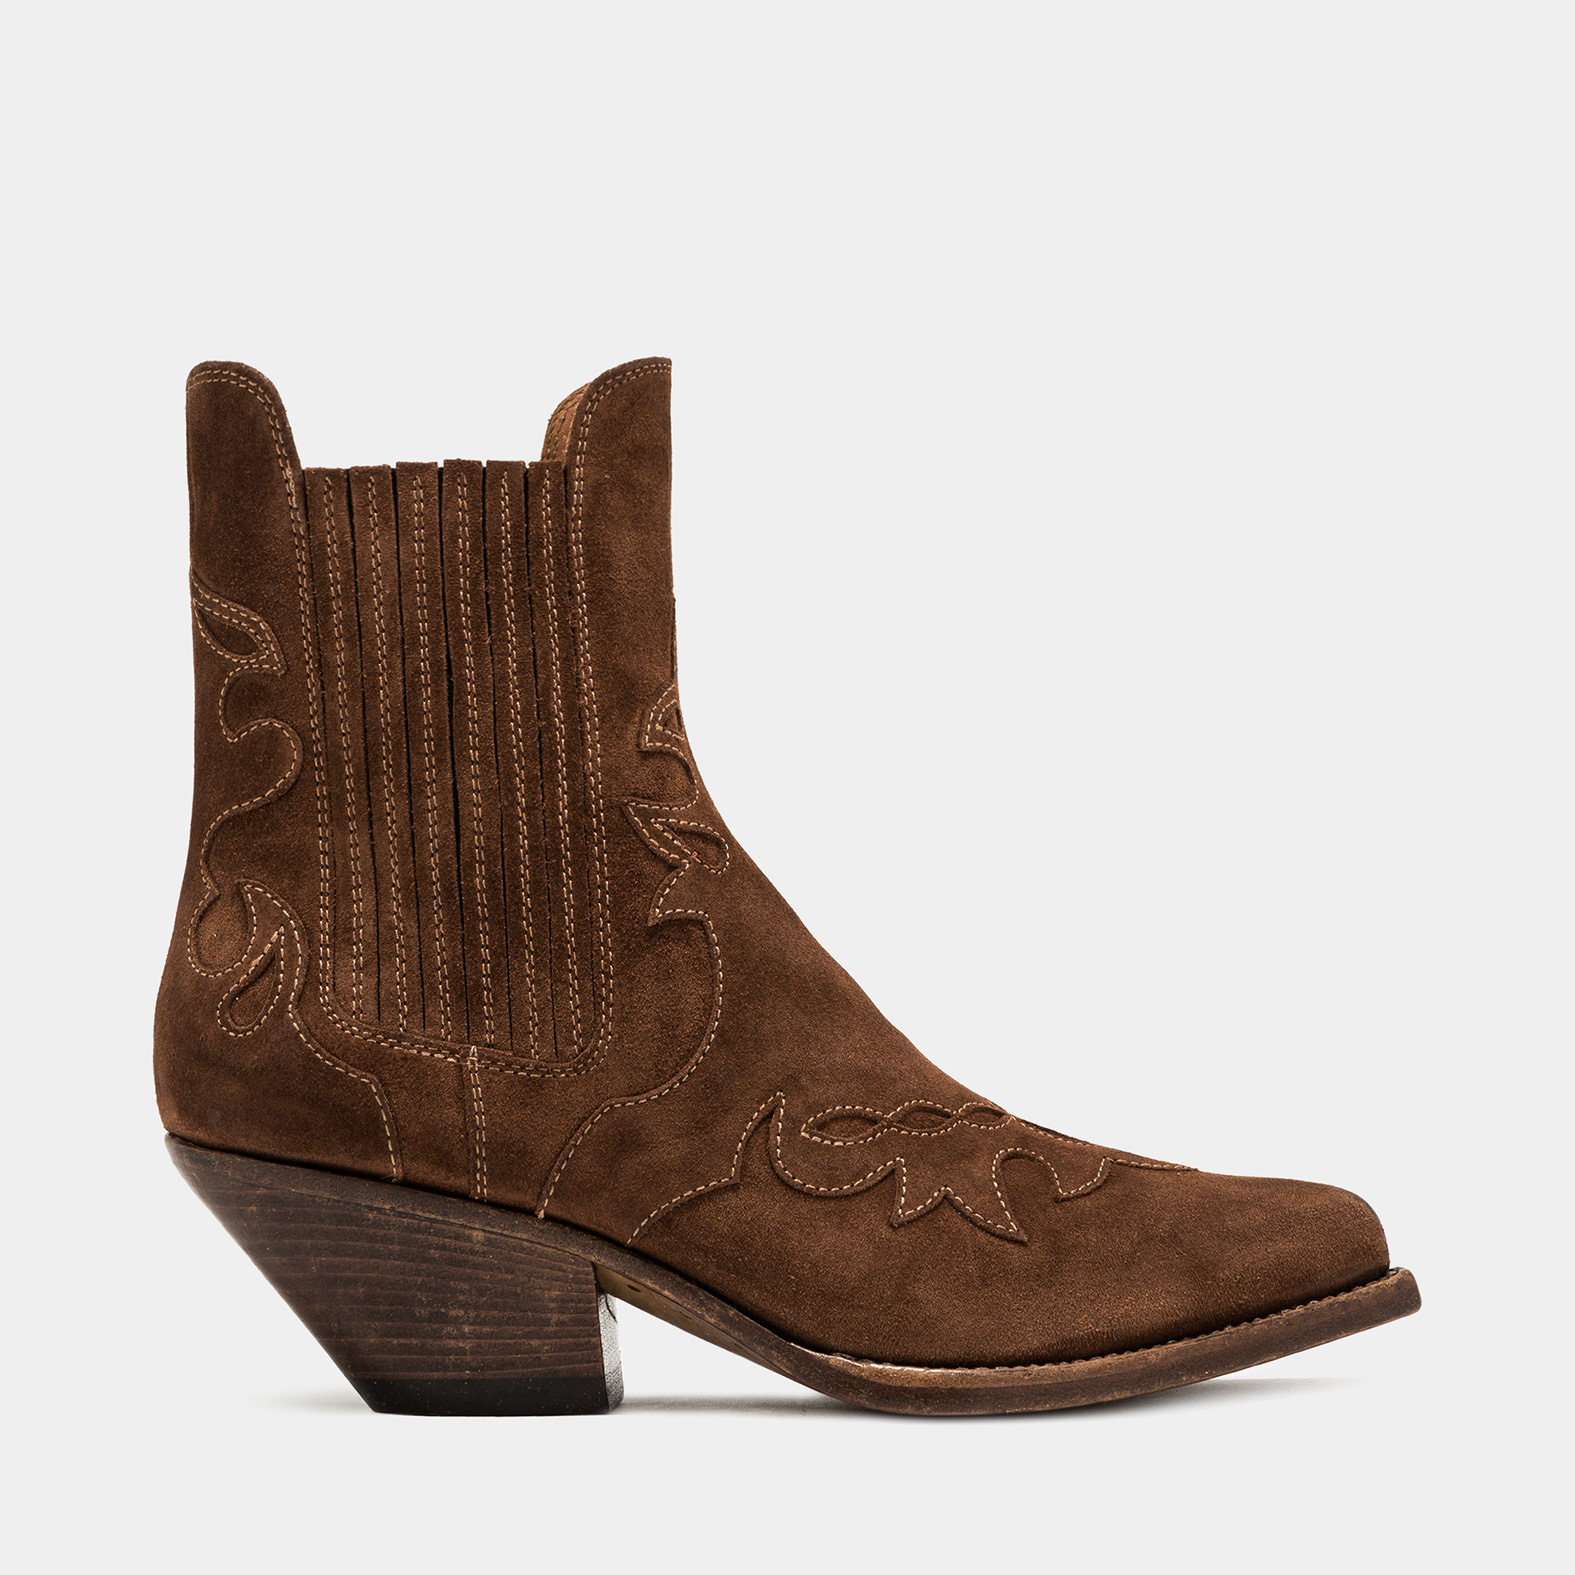 BUTTERO: ELISE LO WHEEL DURANGO BOOTS IN FOX SUEDE